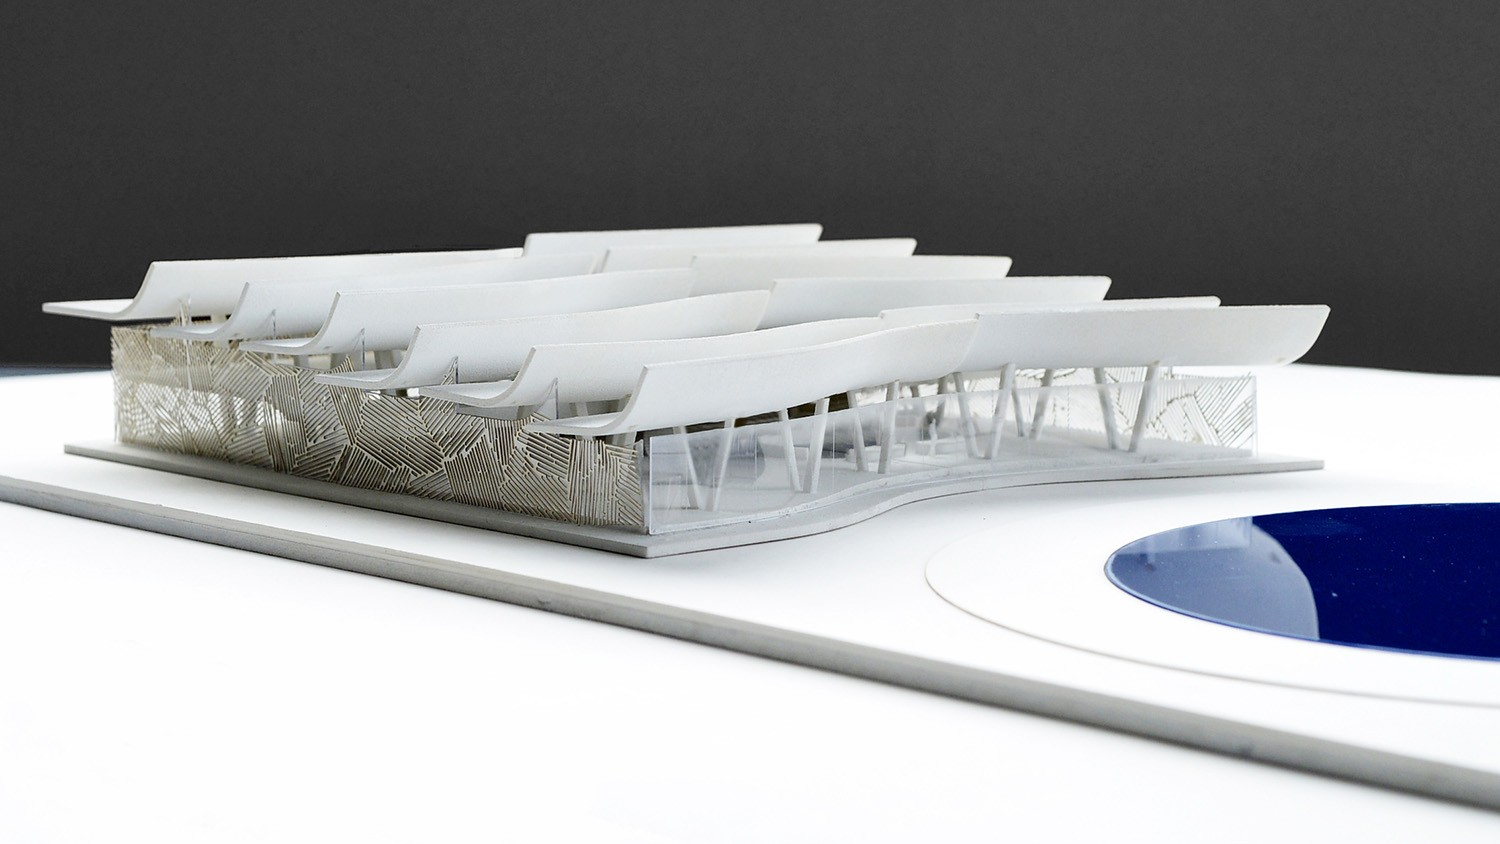 https://s3.us-east-2.amazonaws.com/steven-holl/uploads/projects/project-images/StevenHollArchitects_Malawi_Model_Overall2_WH.jpg